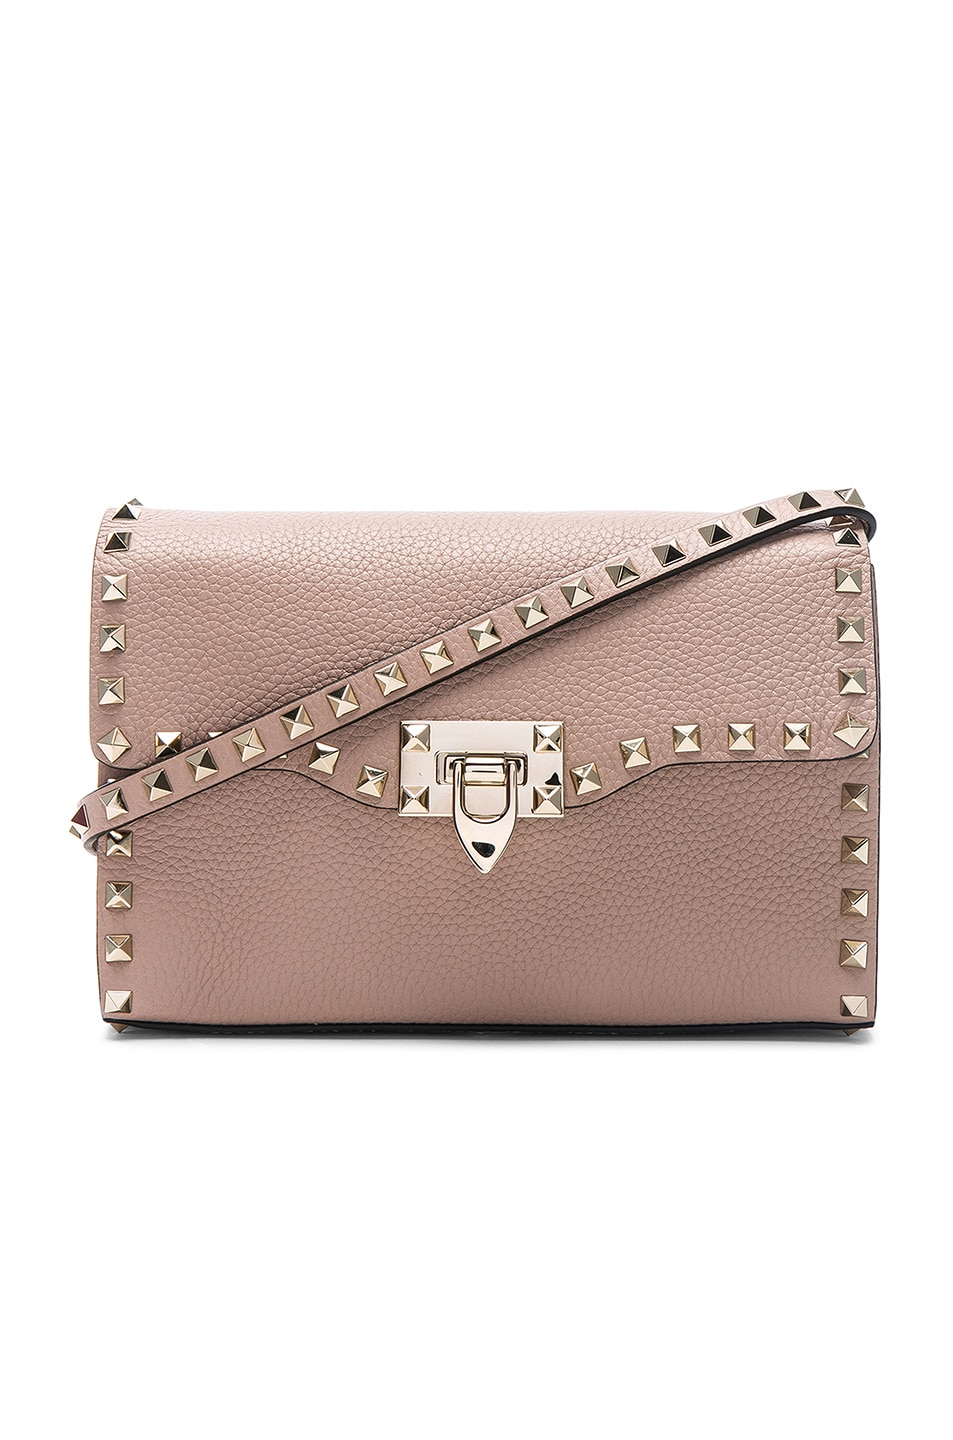 Image 1 of Valentino Medium Rockstud Shoulder Bag in Poudre